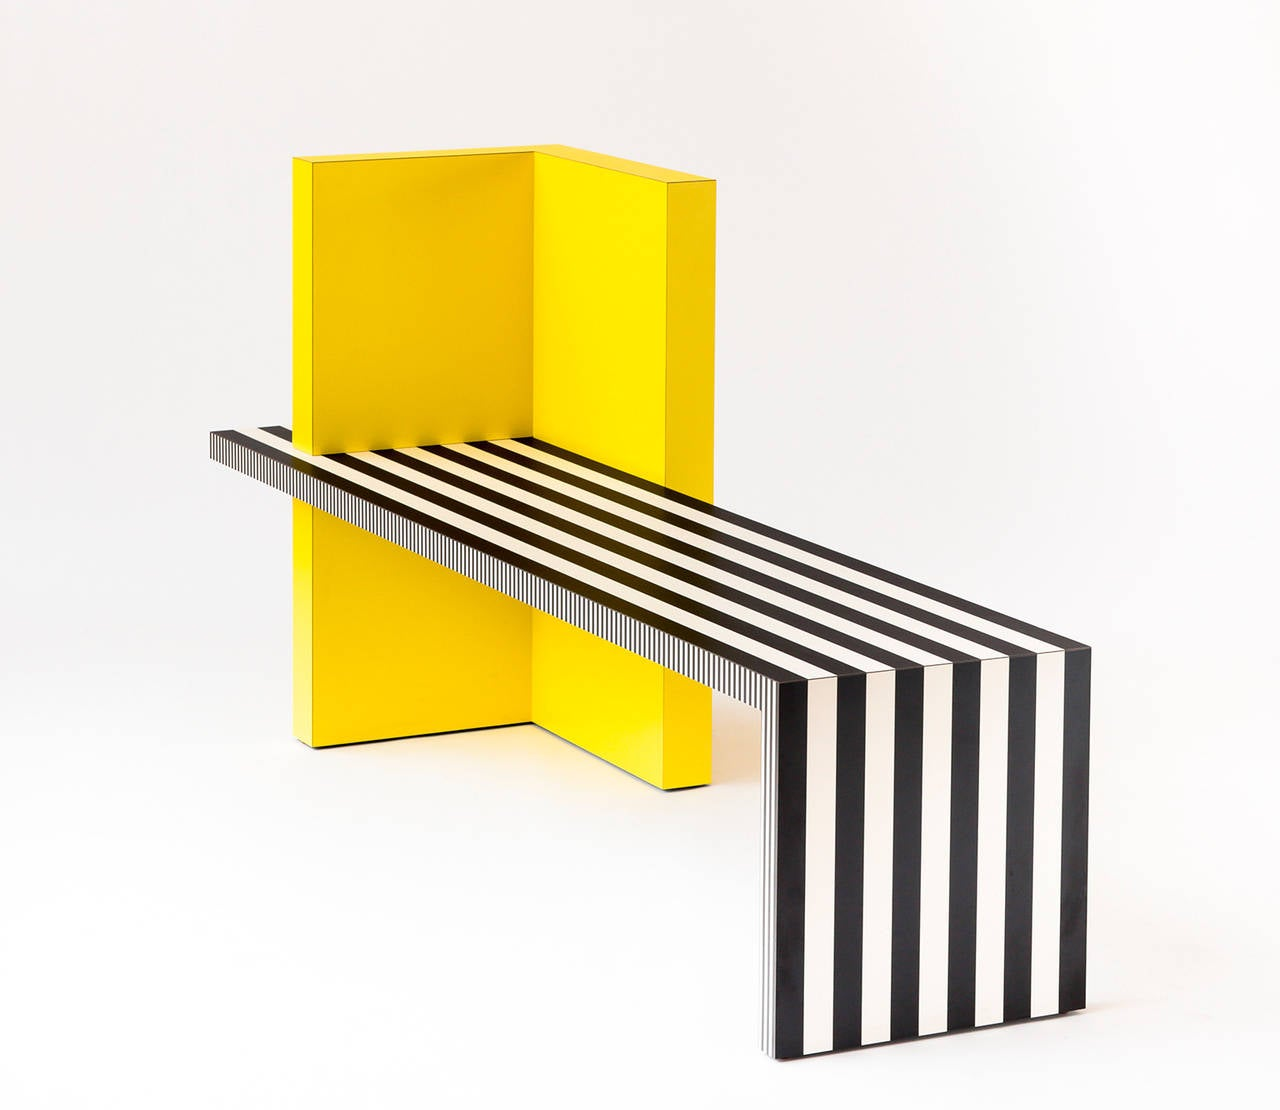 """Neo Laminati bench no. 84.  Shown in yellow with black and white stripes. Measures: 70"""" W x 20"""" D x 34"""" H, 17"""" SH. Made to order. Lead time 6-8 weeks. Custom sizes and colors available upon request.  Custom laminate and"""